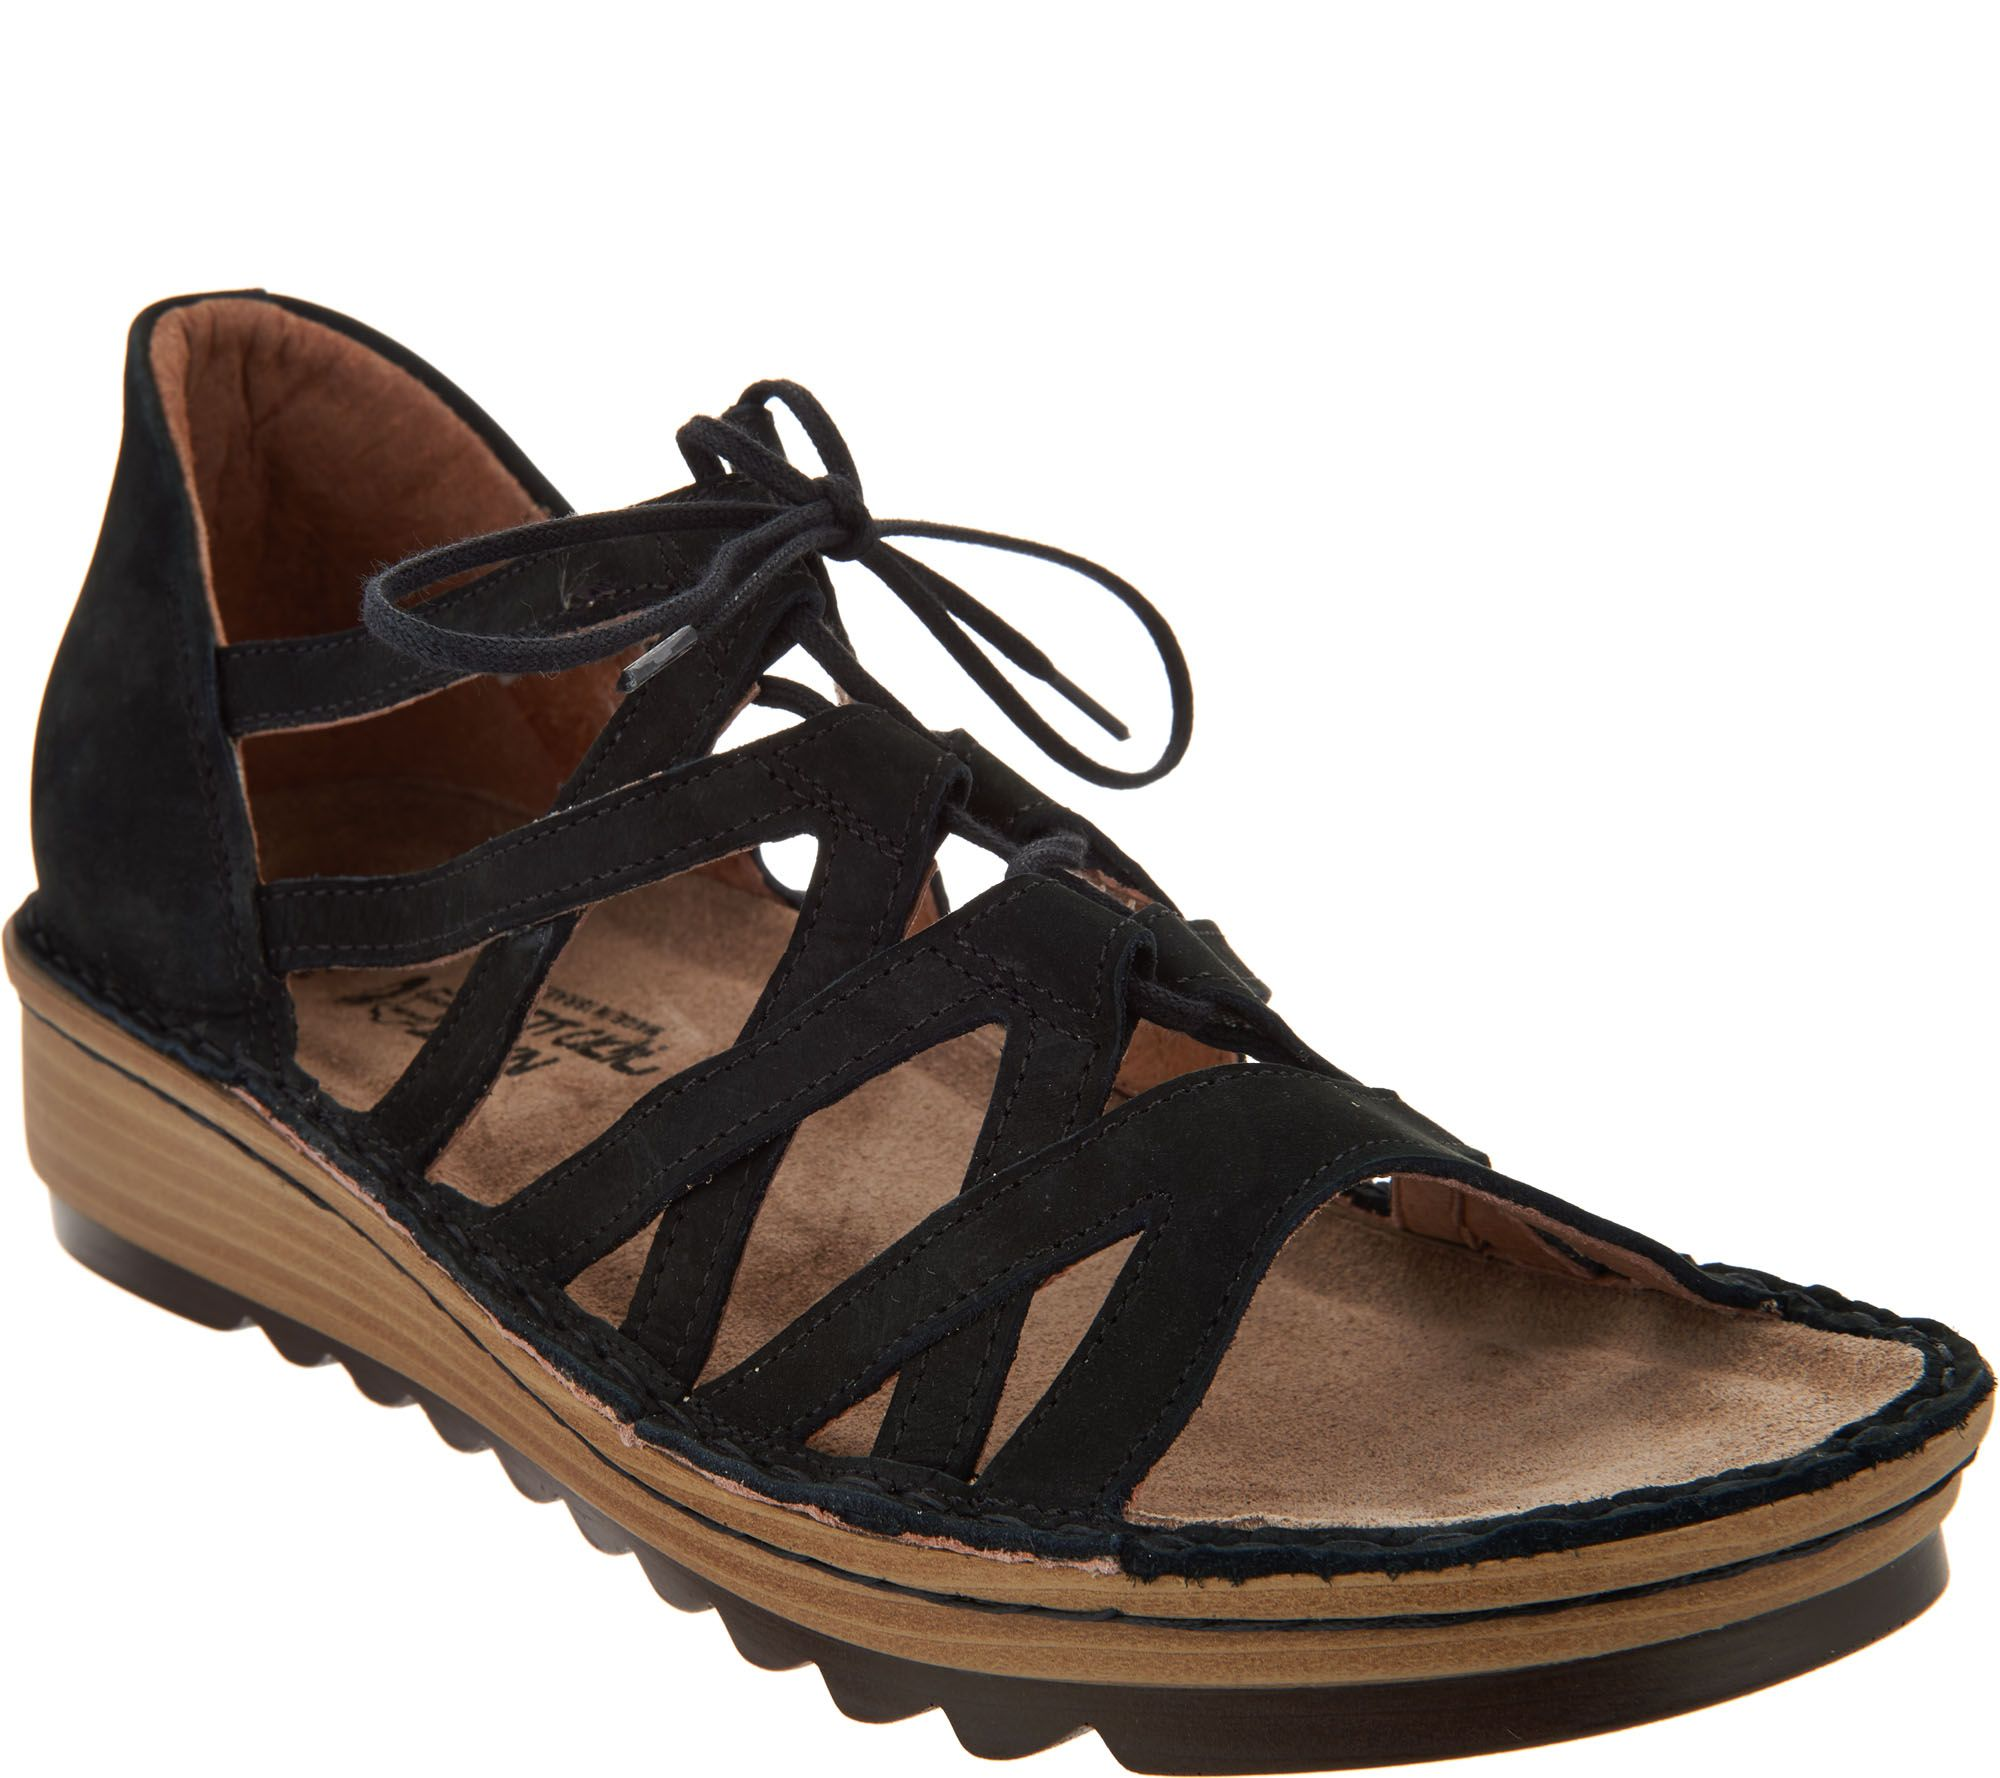 Naot Leather Lace-up Wedge Sandals - - Yarrow - Page 1 — QVC.com 87ba594ca81